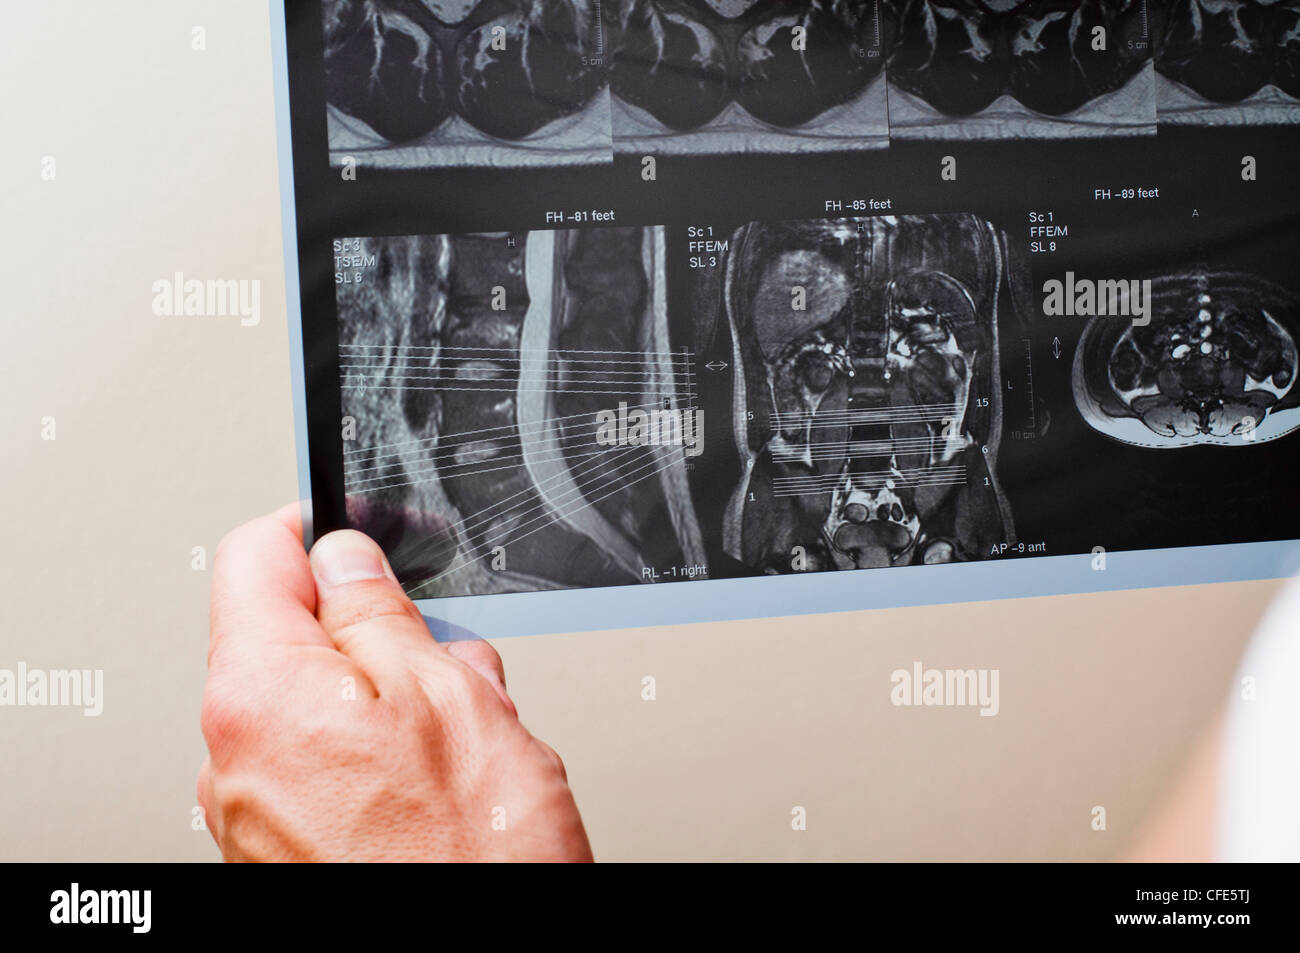 MRI of a patient with spinal pathology - Stock Image